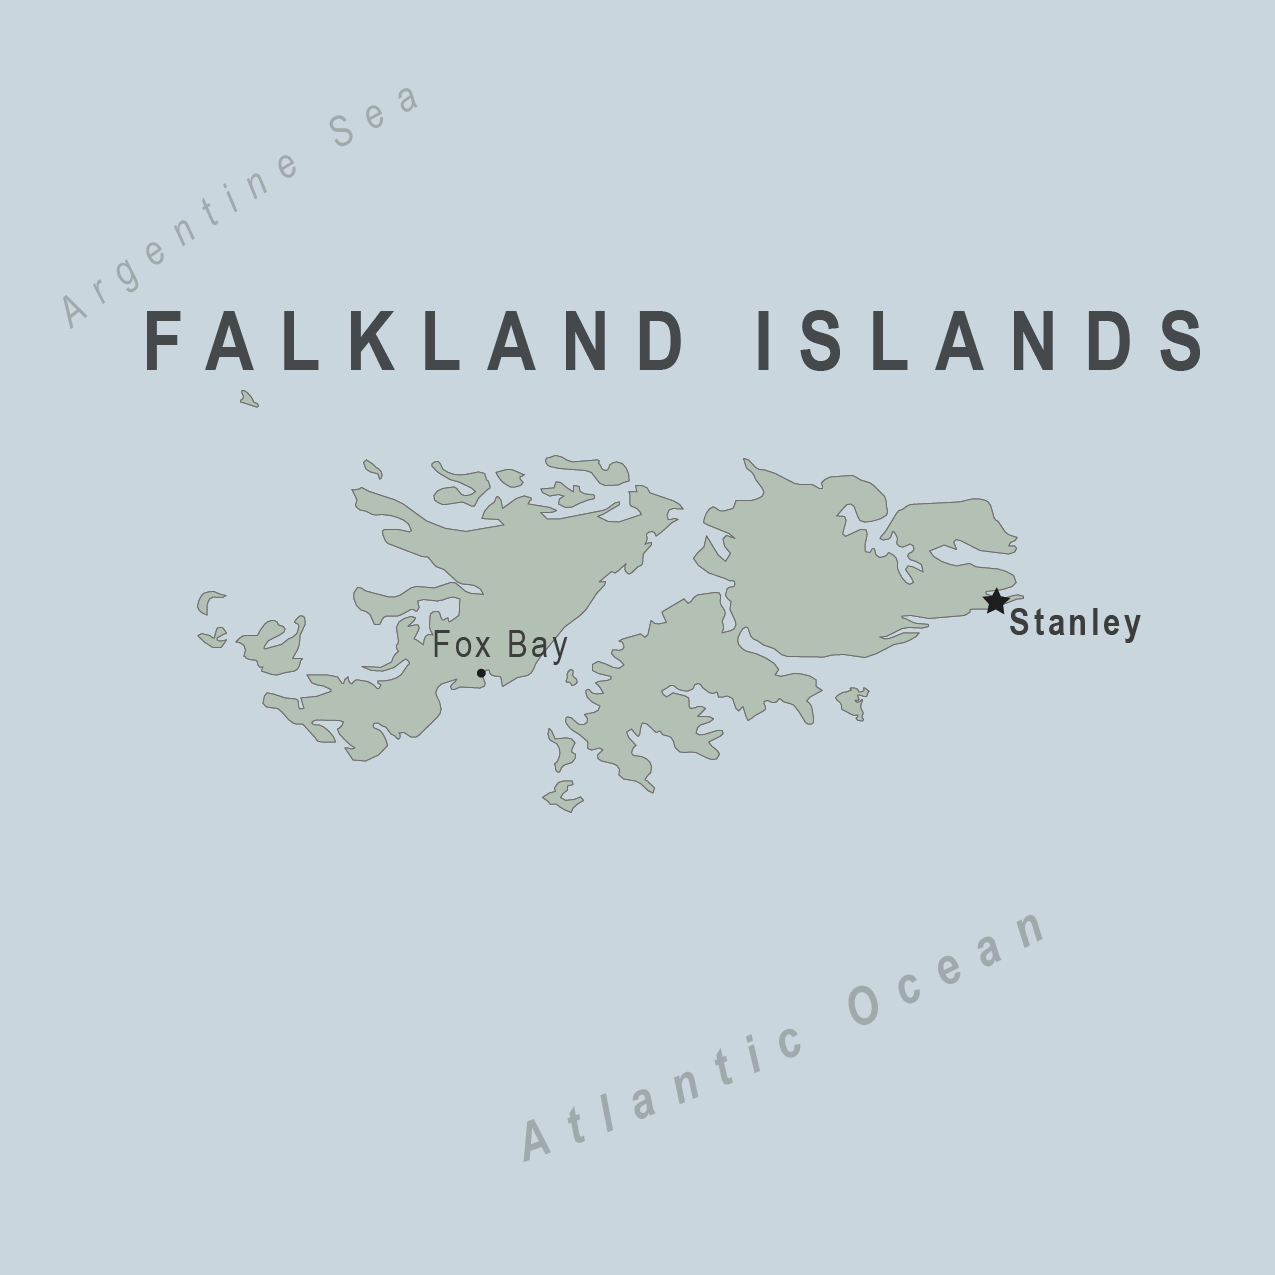 Health Information For Travelers To Falkland Islands